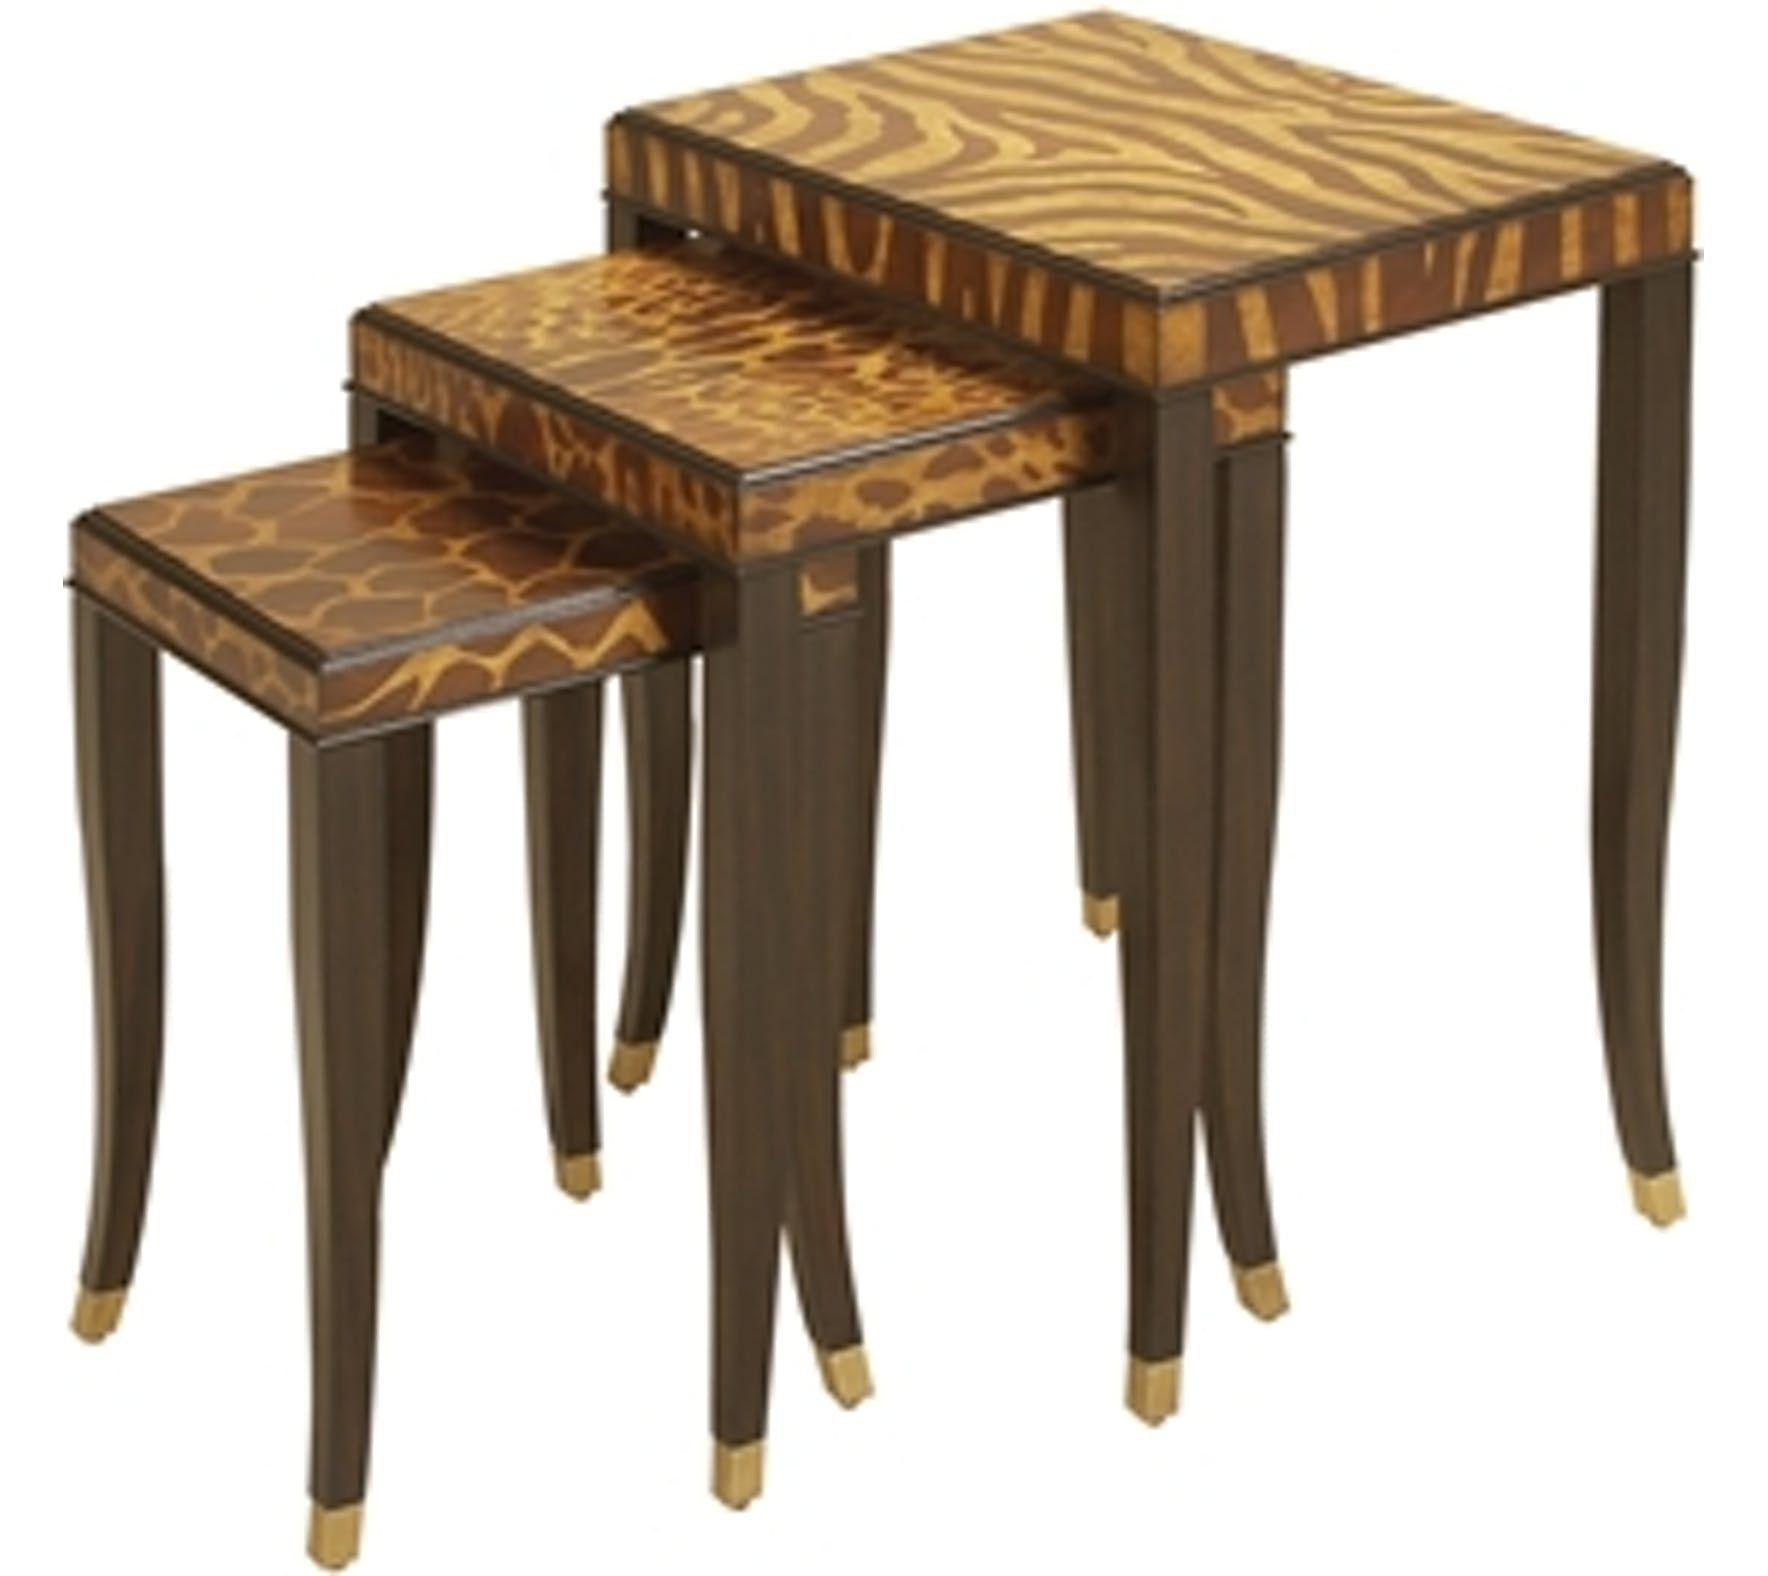 set of three ebony finishes nesting tables by maitland on exclusive modern nesting end tables design ideas very functional furnishings id=12916